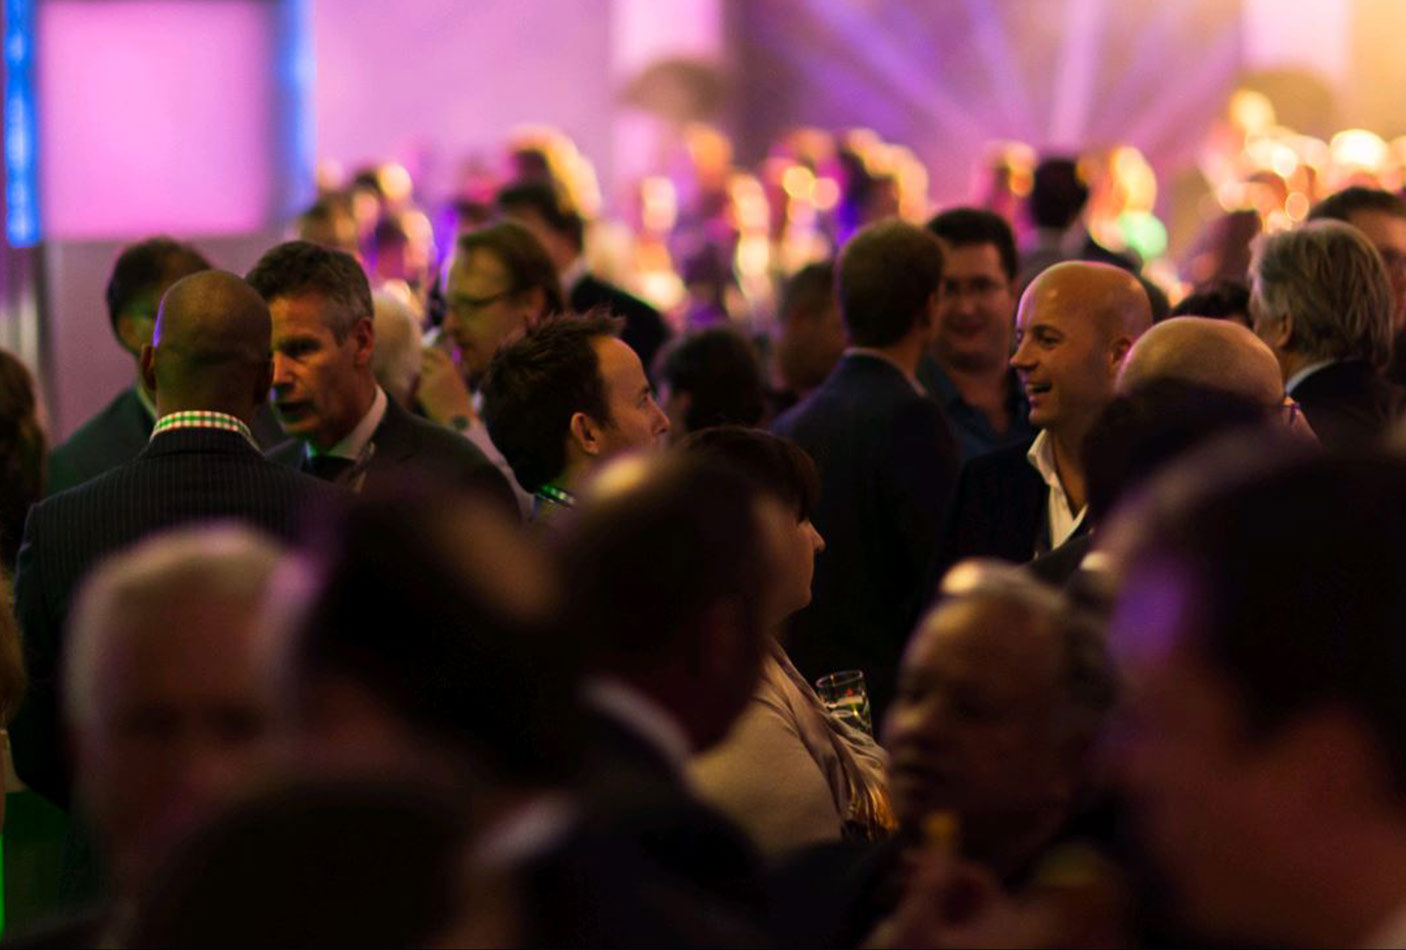 How to Not Waste Your Time at Networking Events